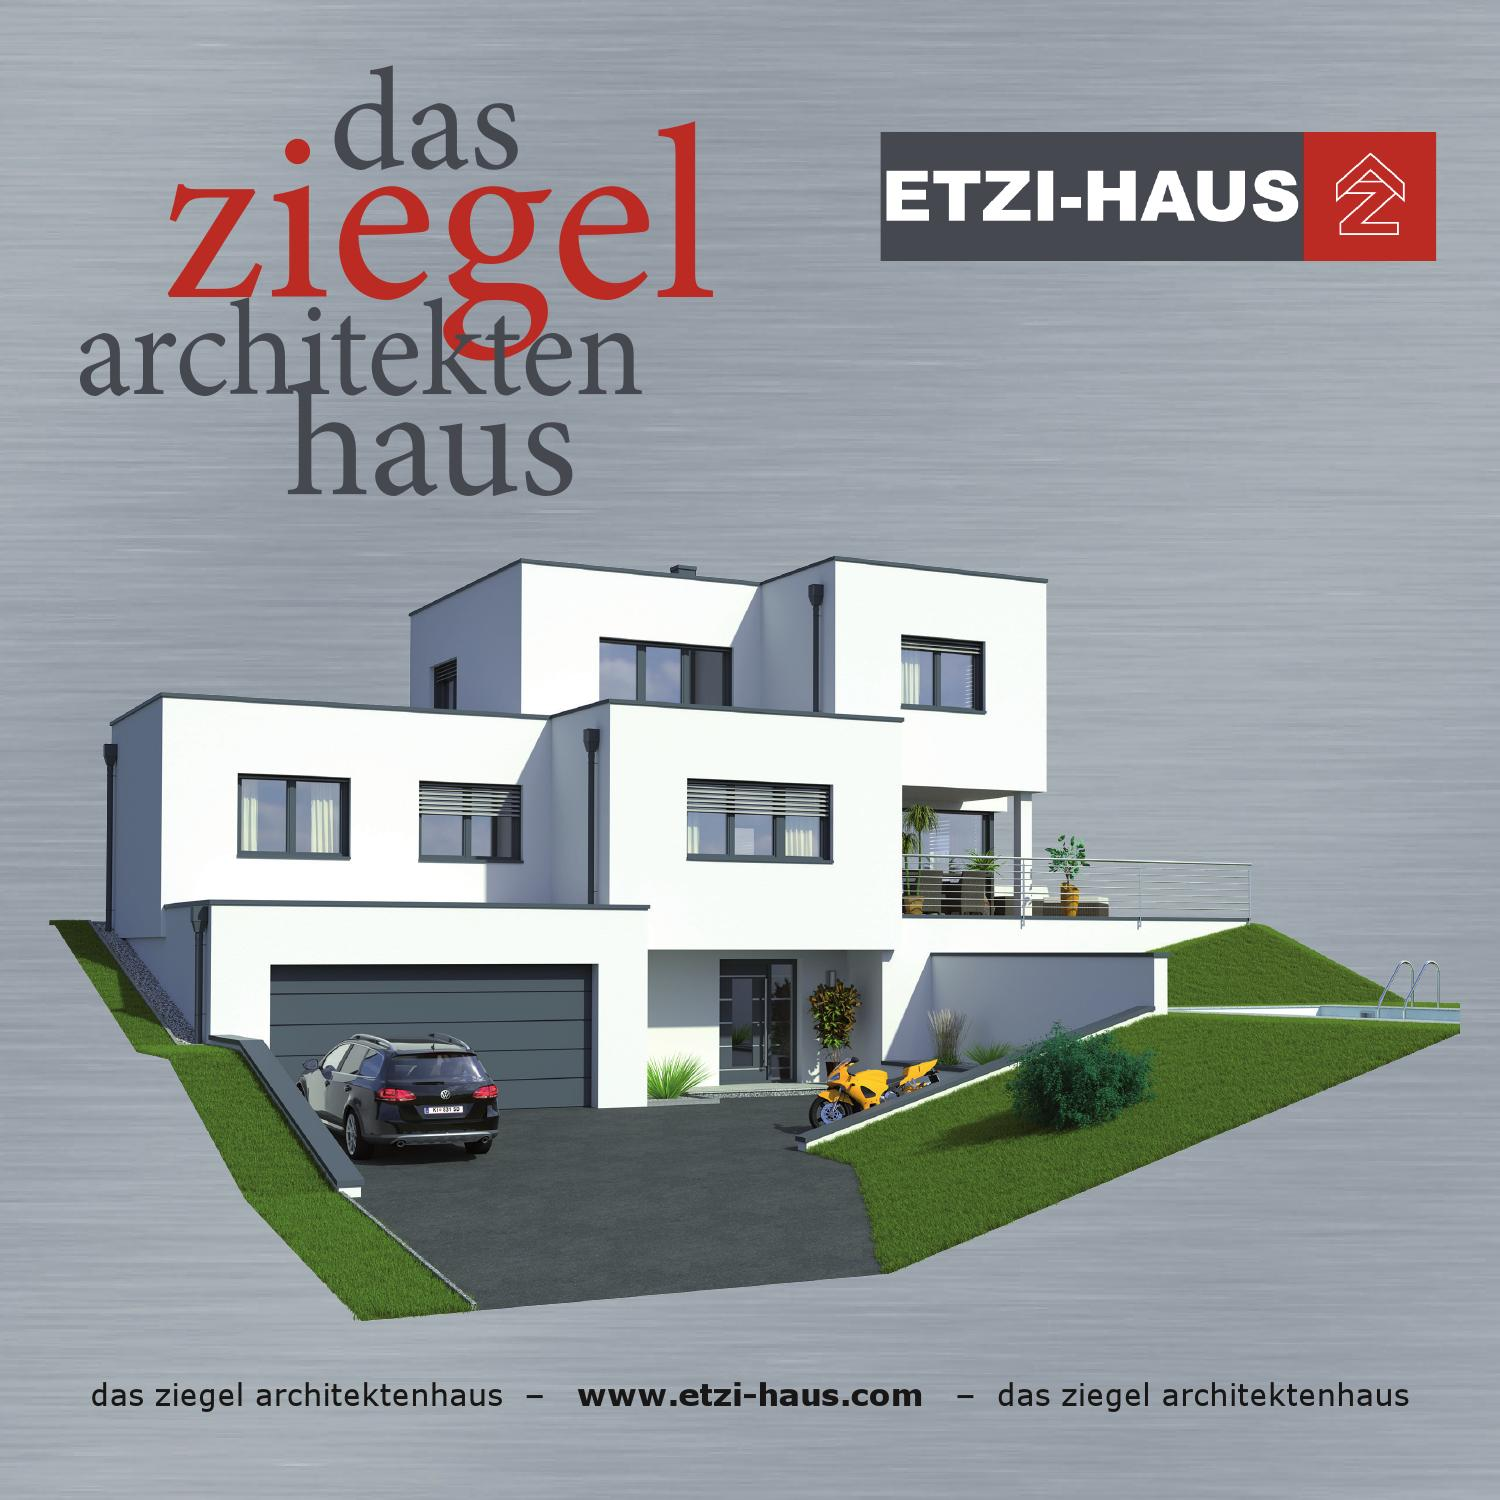 katalog etzi haus by etzi haus issuu. Black Bedroom Furniture Sets. Home Design Ideas